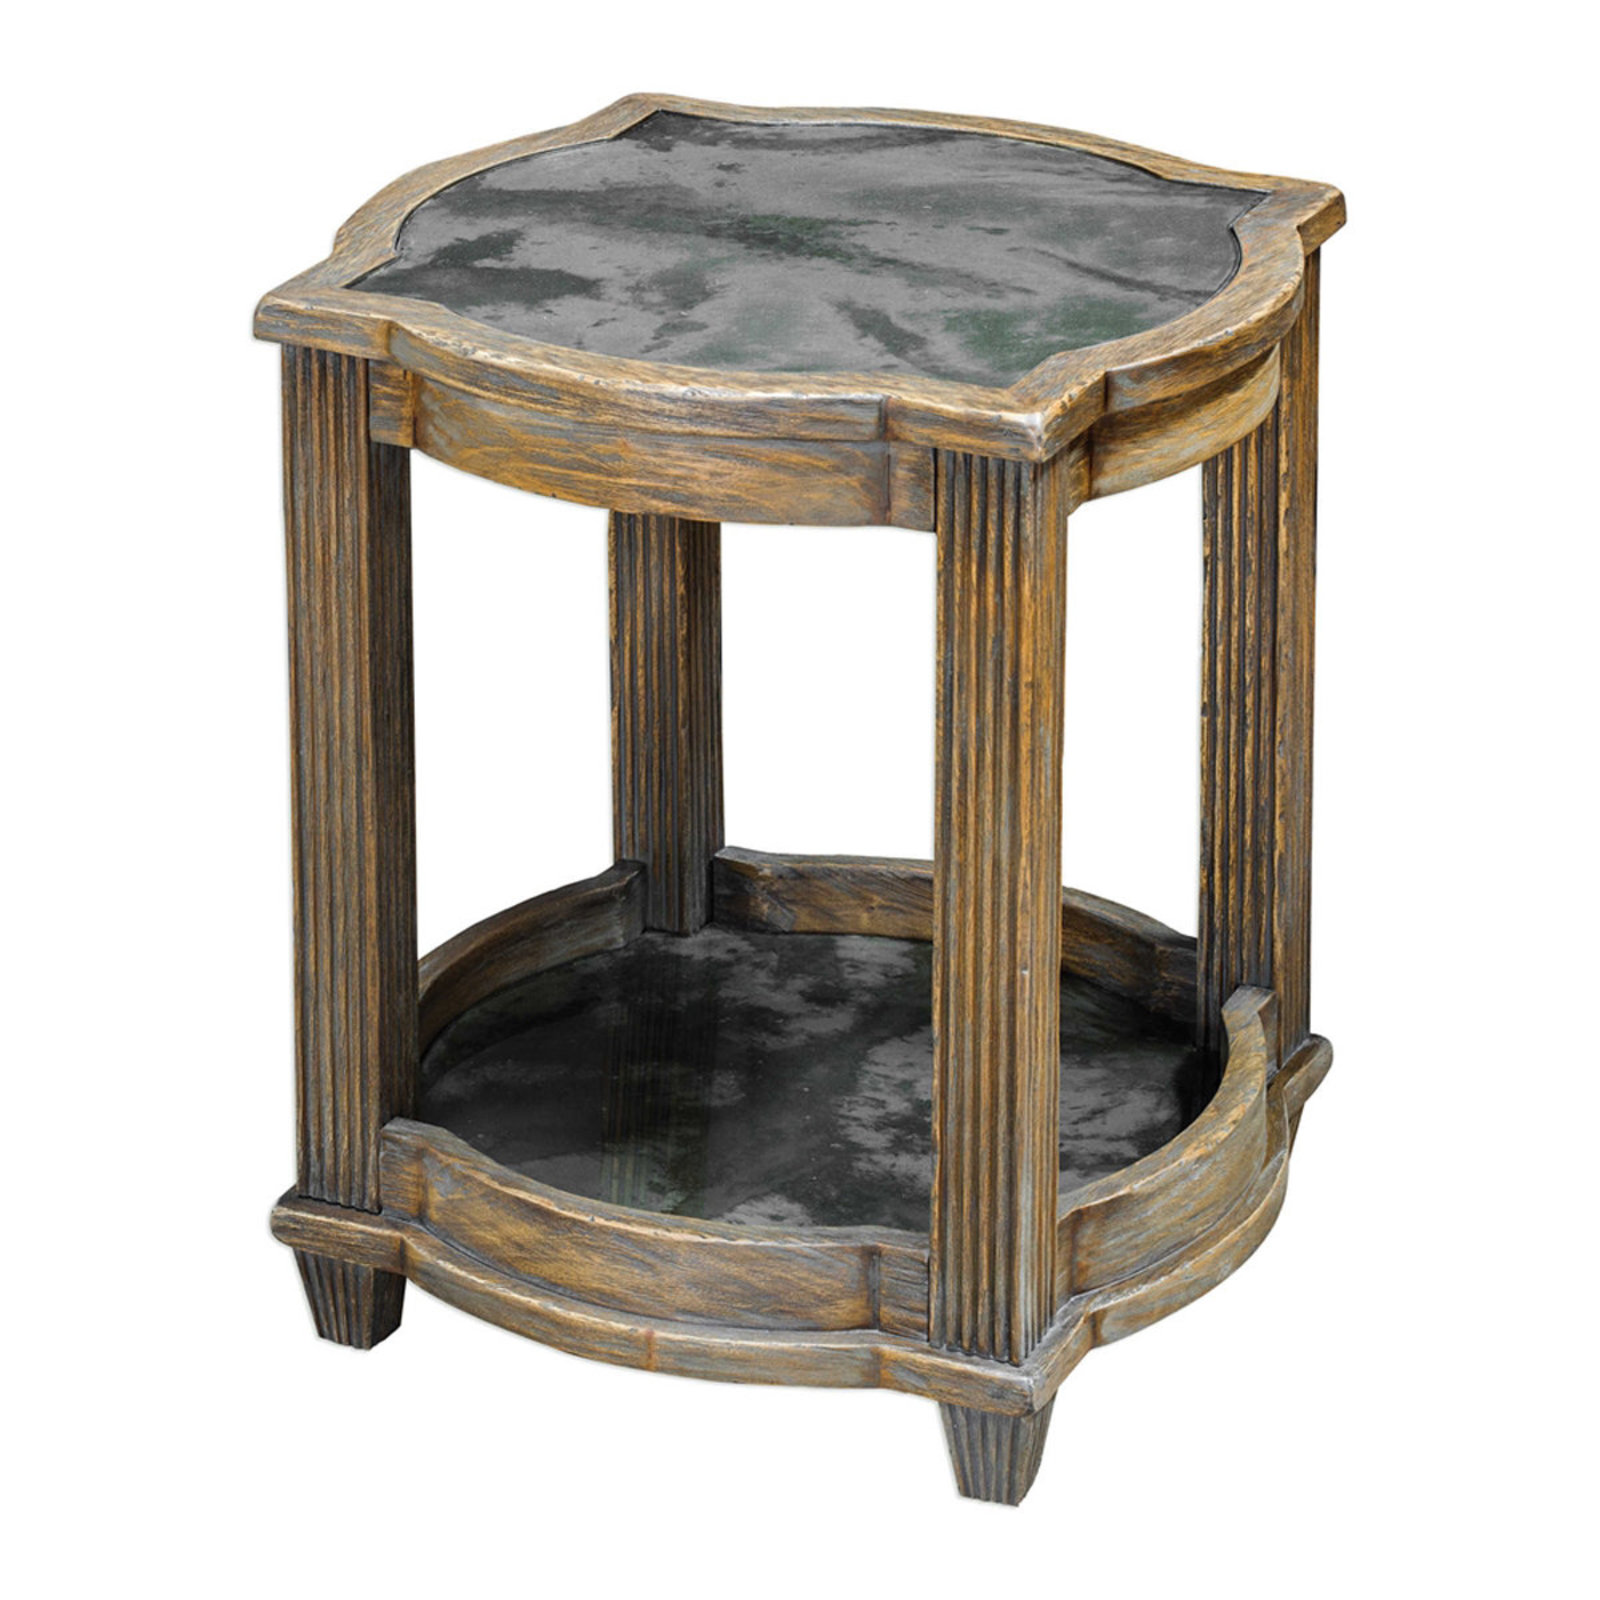 weathered wood quatrefoil accent table shades light oak stain gra floor lamp with inexpensive nightstands live edge coffee bamboo bedroom furniture outdoor kitchen glass dinette